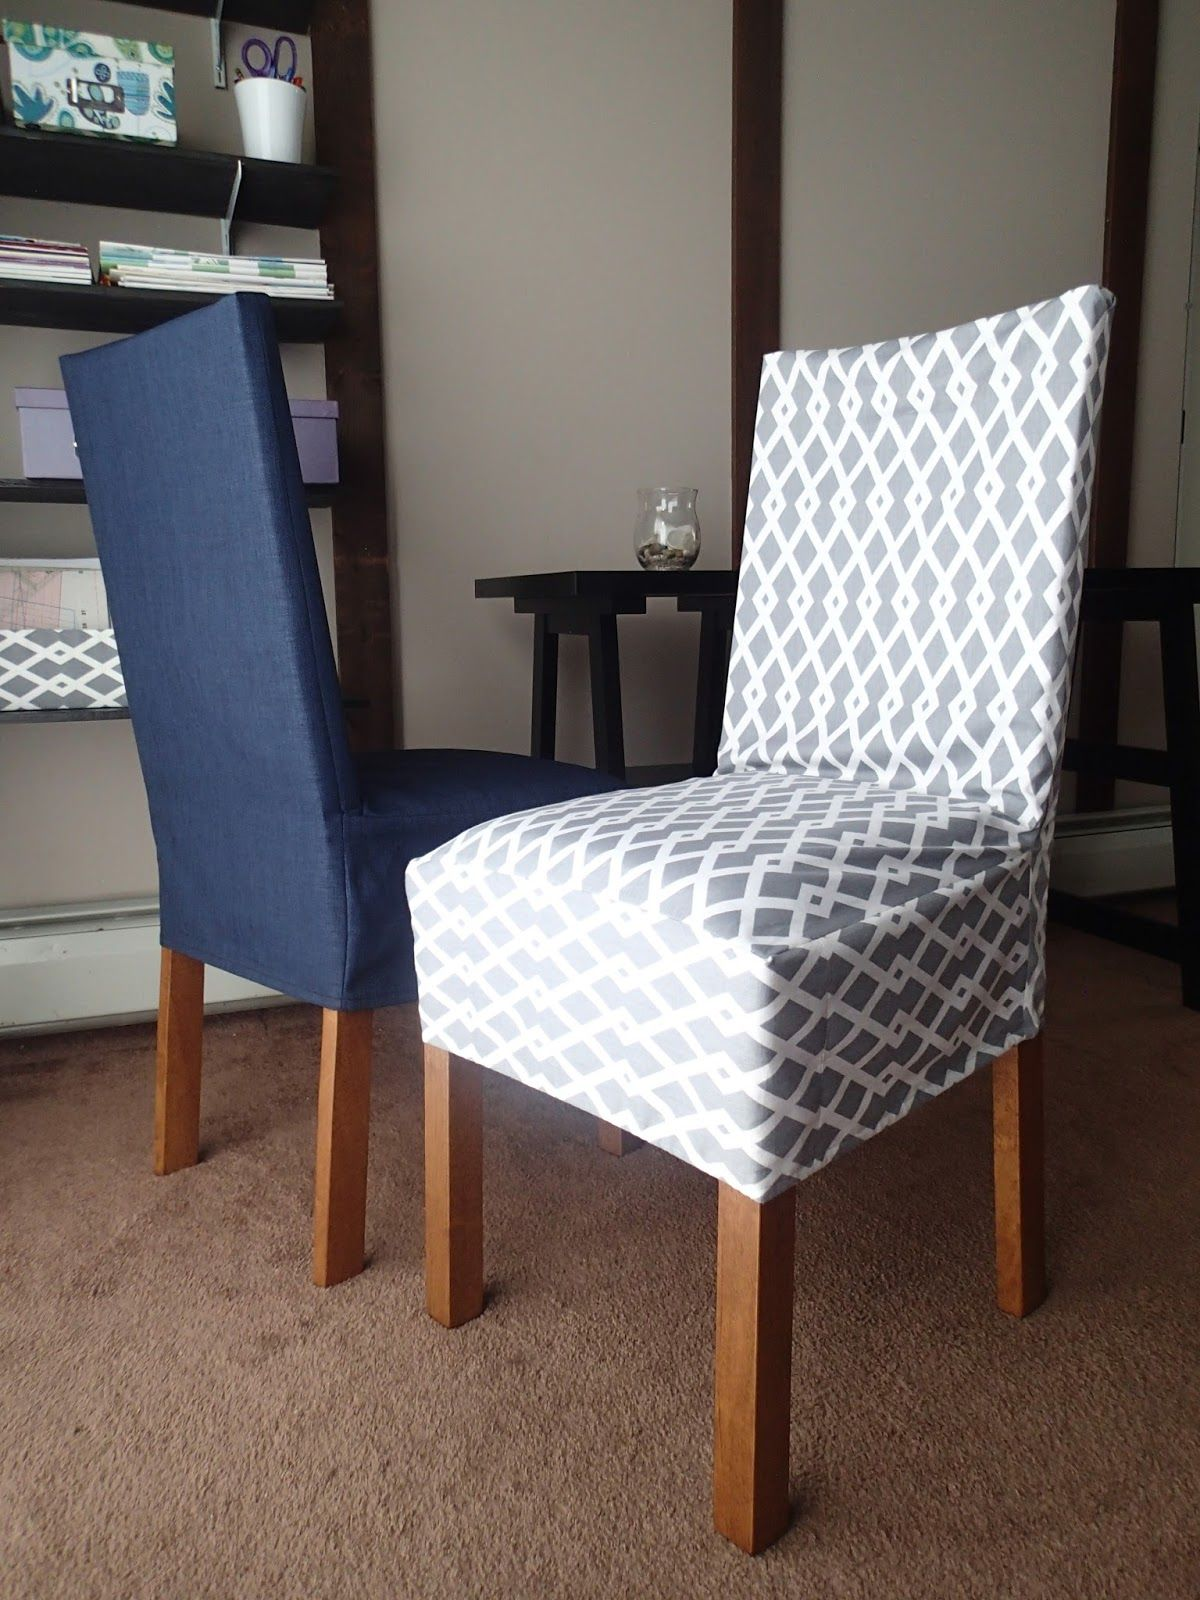 Making Chair Covers Slip Became Popular In A Recent Year It An Easy And Relatively Inexpensive Way Of Changing Decor